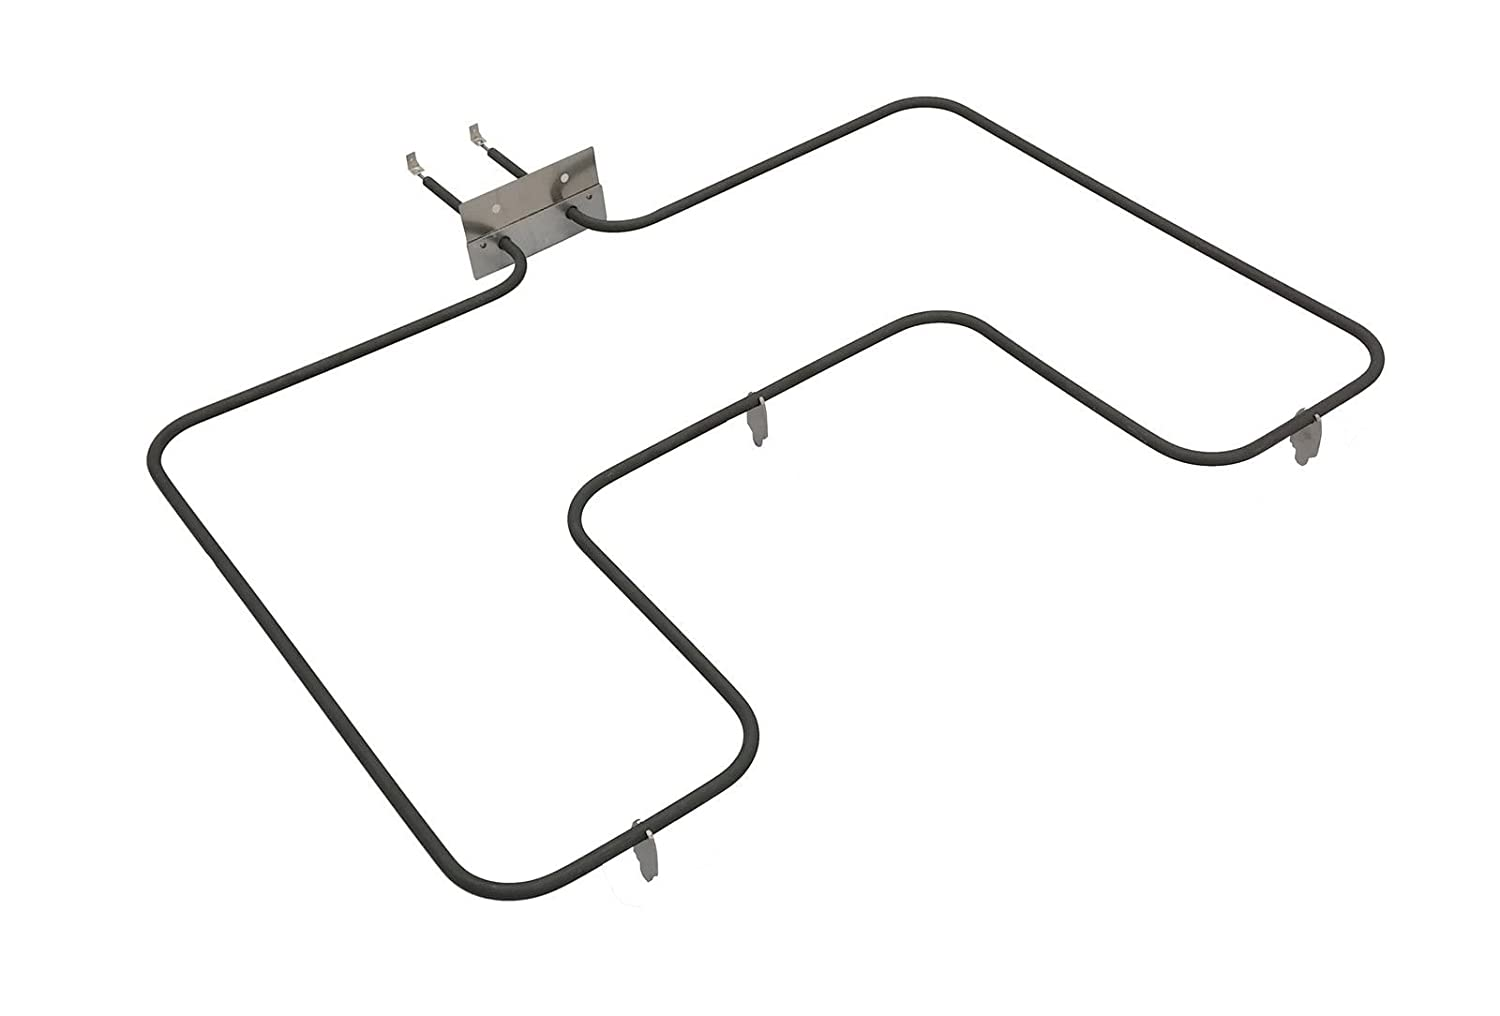 Replacemen new Range Oven Bake Lower Unit Heating Element CH7865,for Frigidaire 318255006